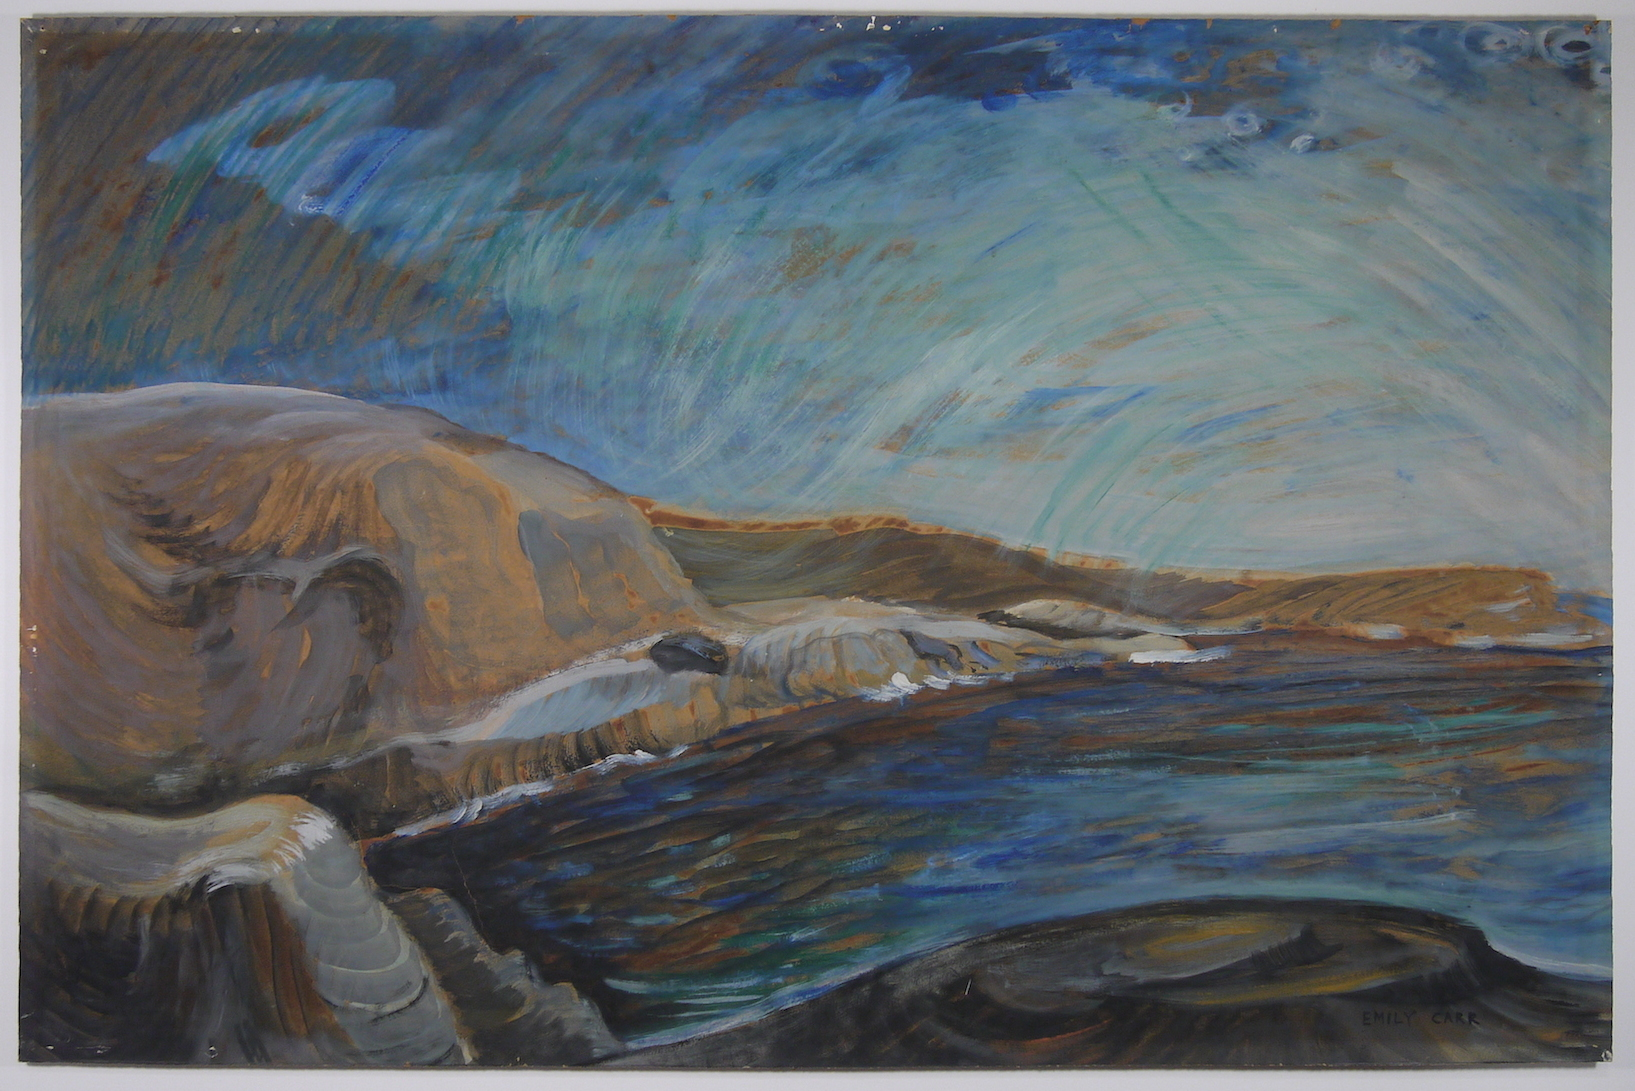 Sea and Skyscape , by Emily Carr         Oil on paper, 57.5 x 87.9 (HxW) Before Conservation Treatment